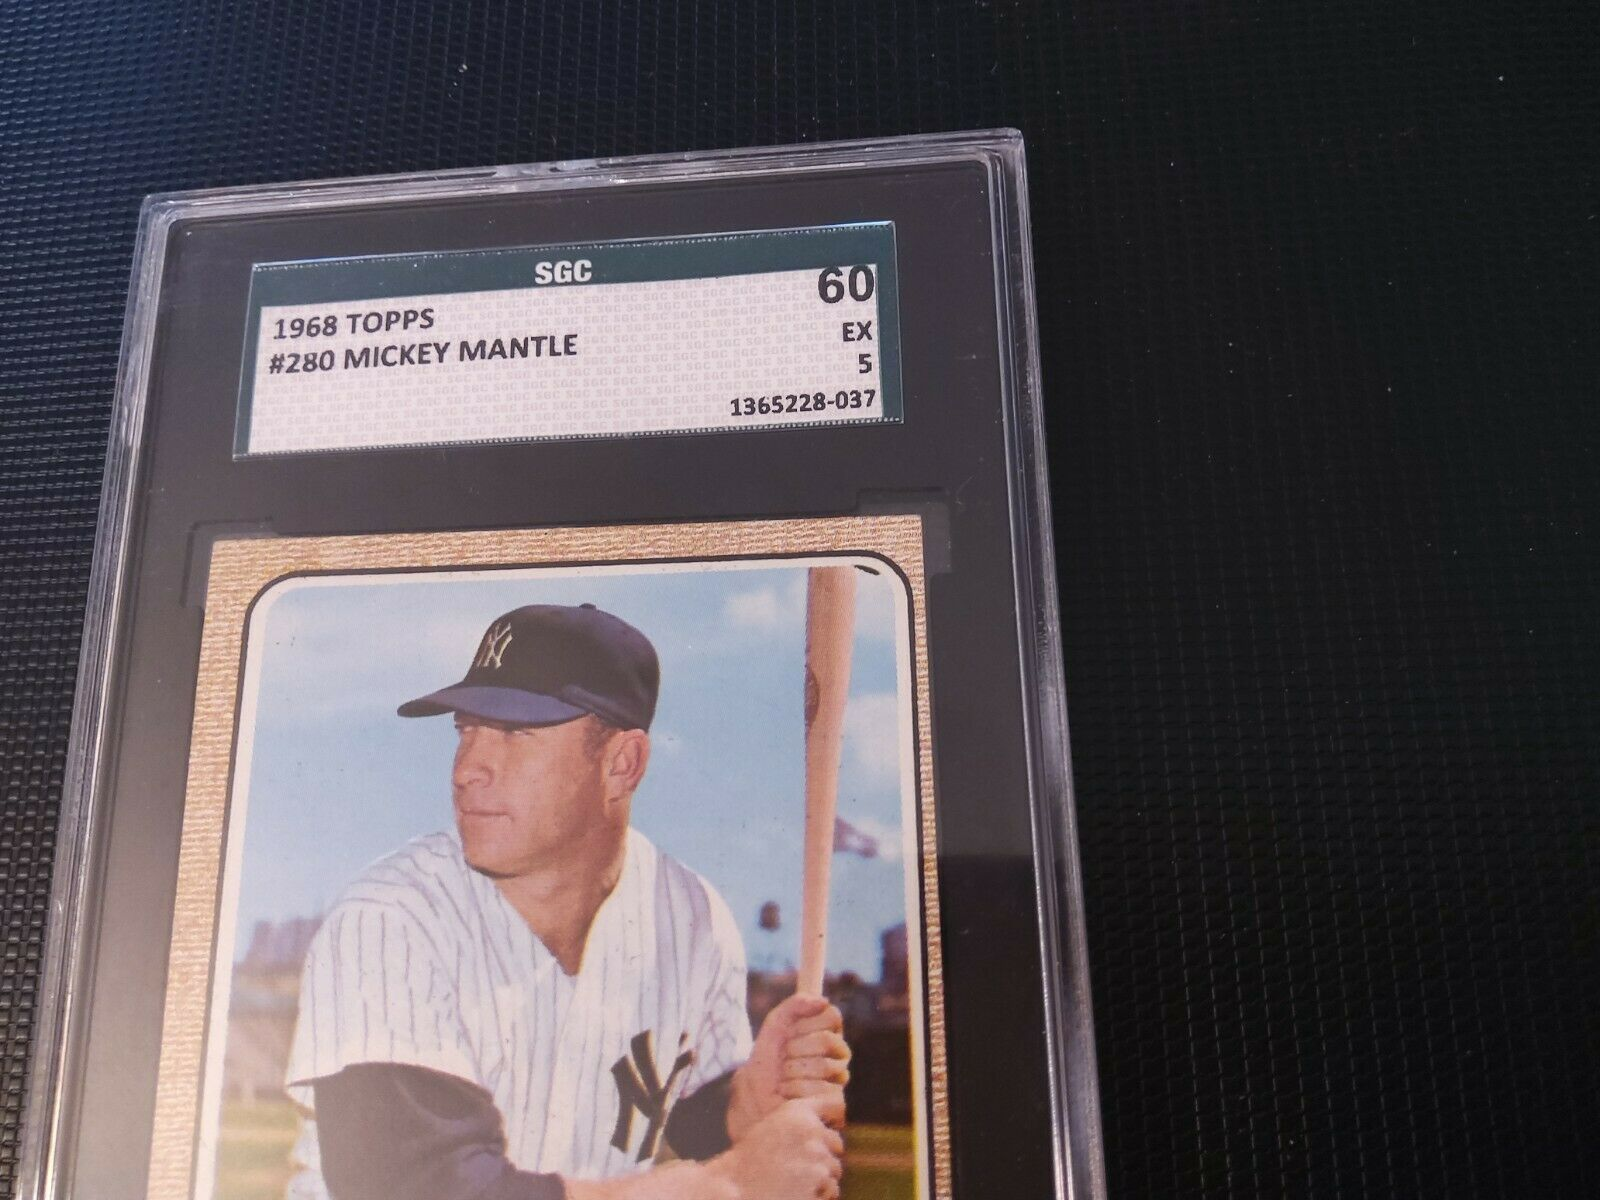 1968 TOPPS BASEBALL #280 MICKEY MANTLE SGC 5 EXCELLENT (60), Nice Corners - Image 3